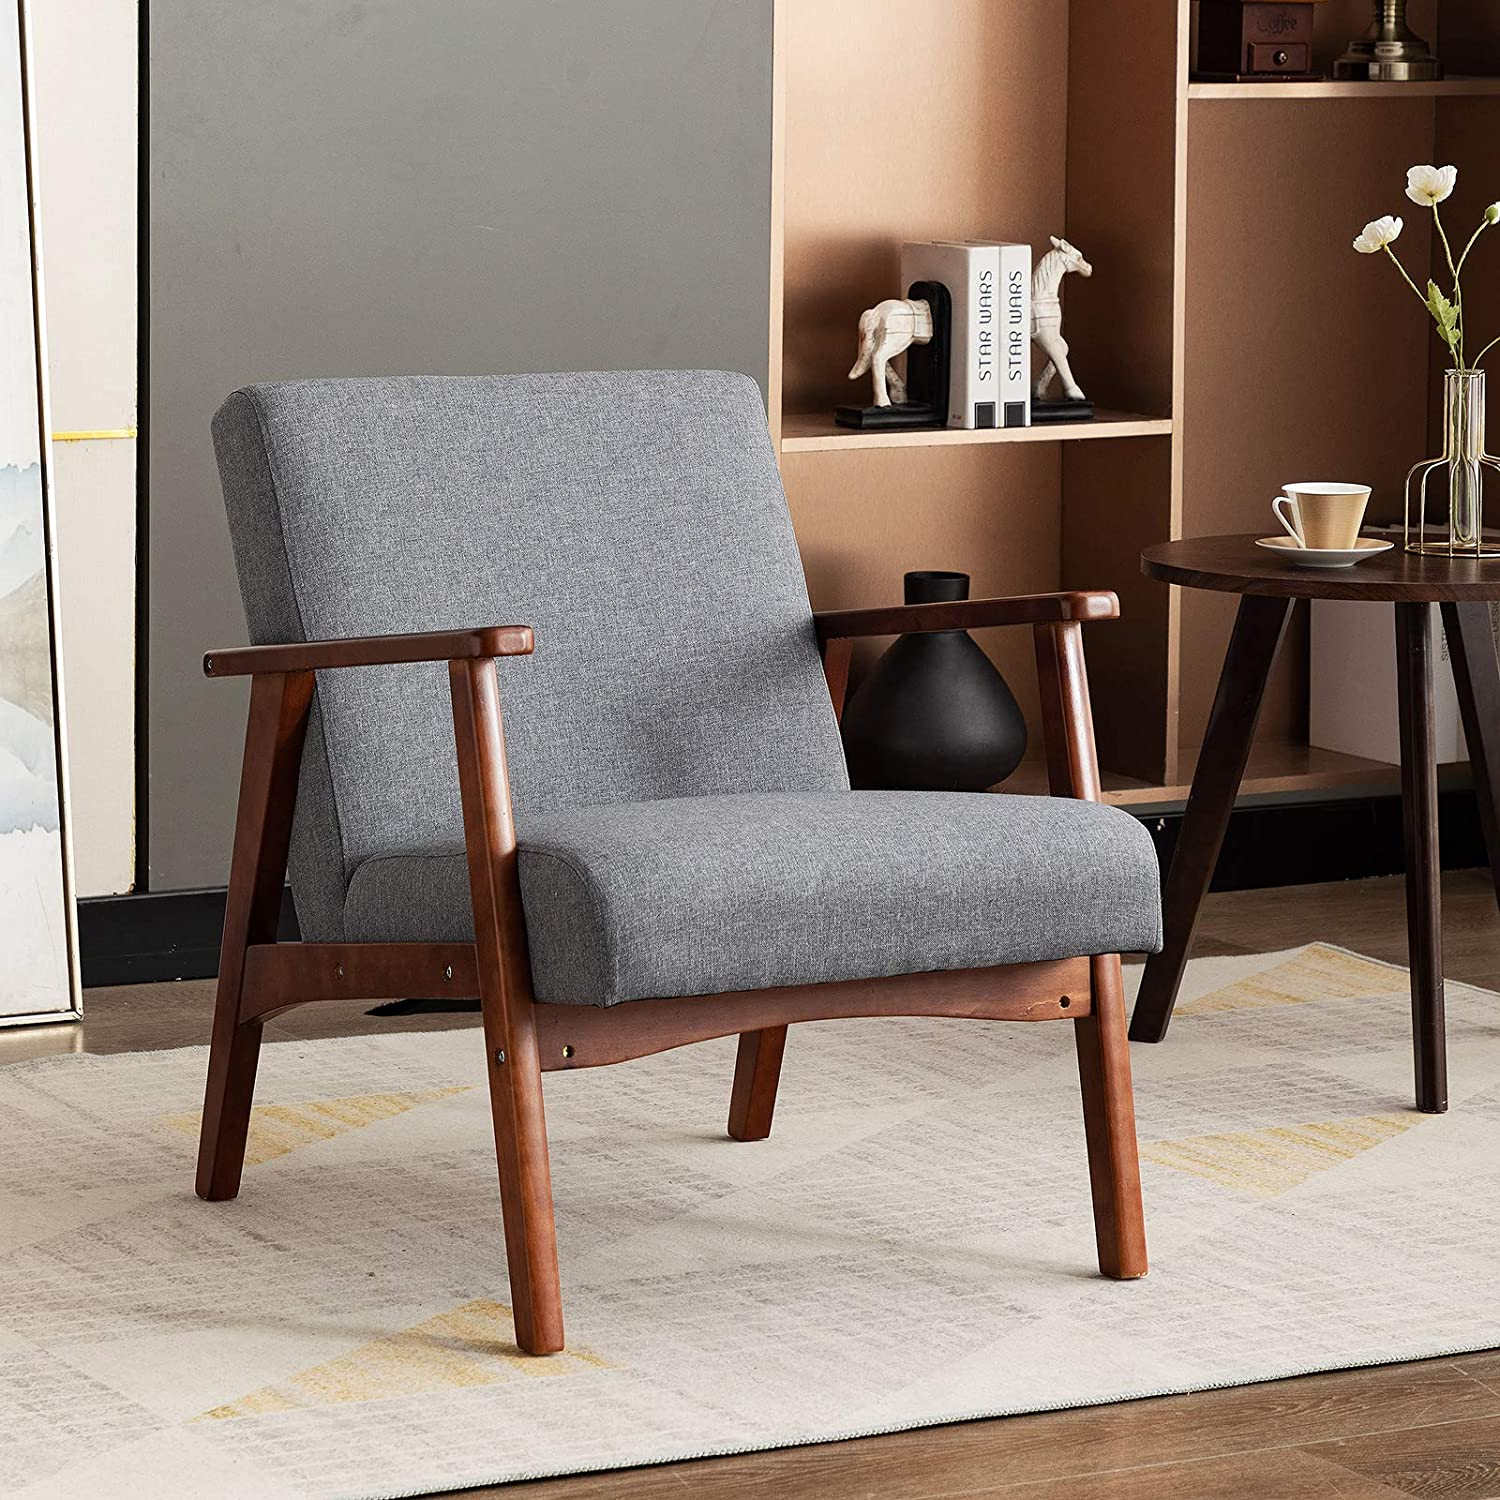 Artechworks Mid-Century Retro Modern Fabric Accent Upholstered